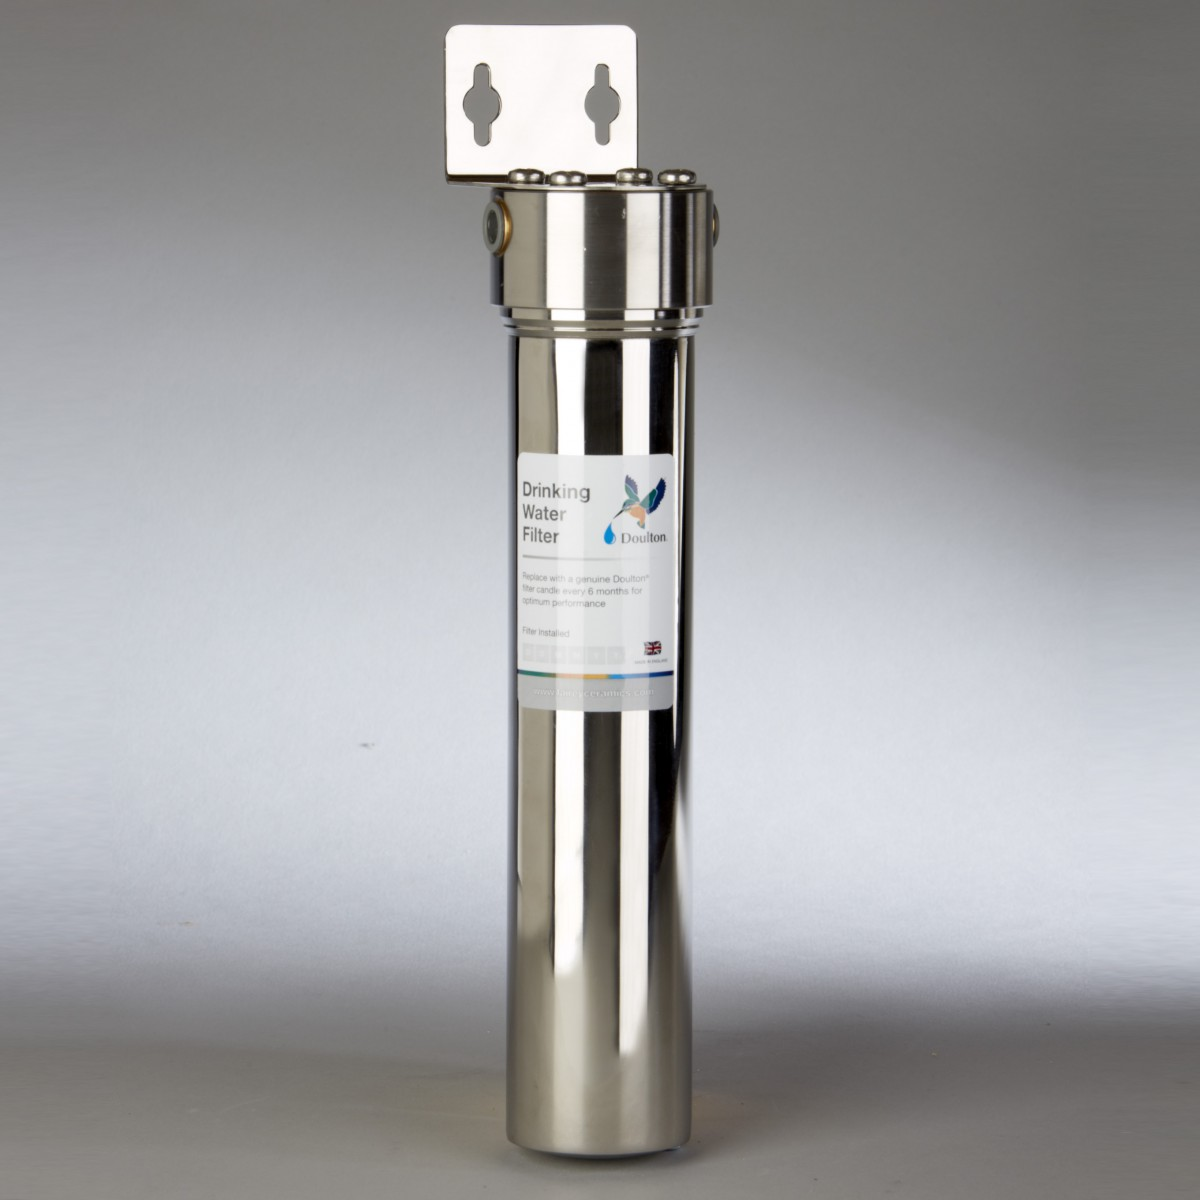 Line Water Filter Doulton W9320007 Stainless Steel In Line Ceramic Candle Water Filter